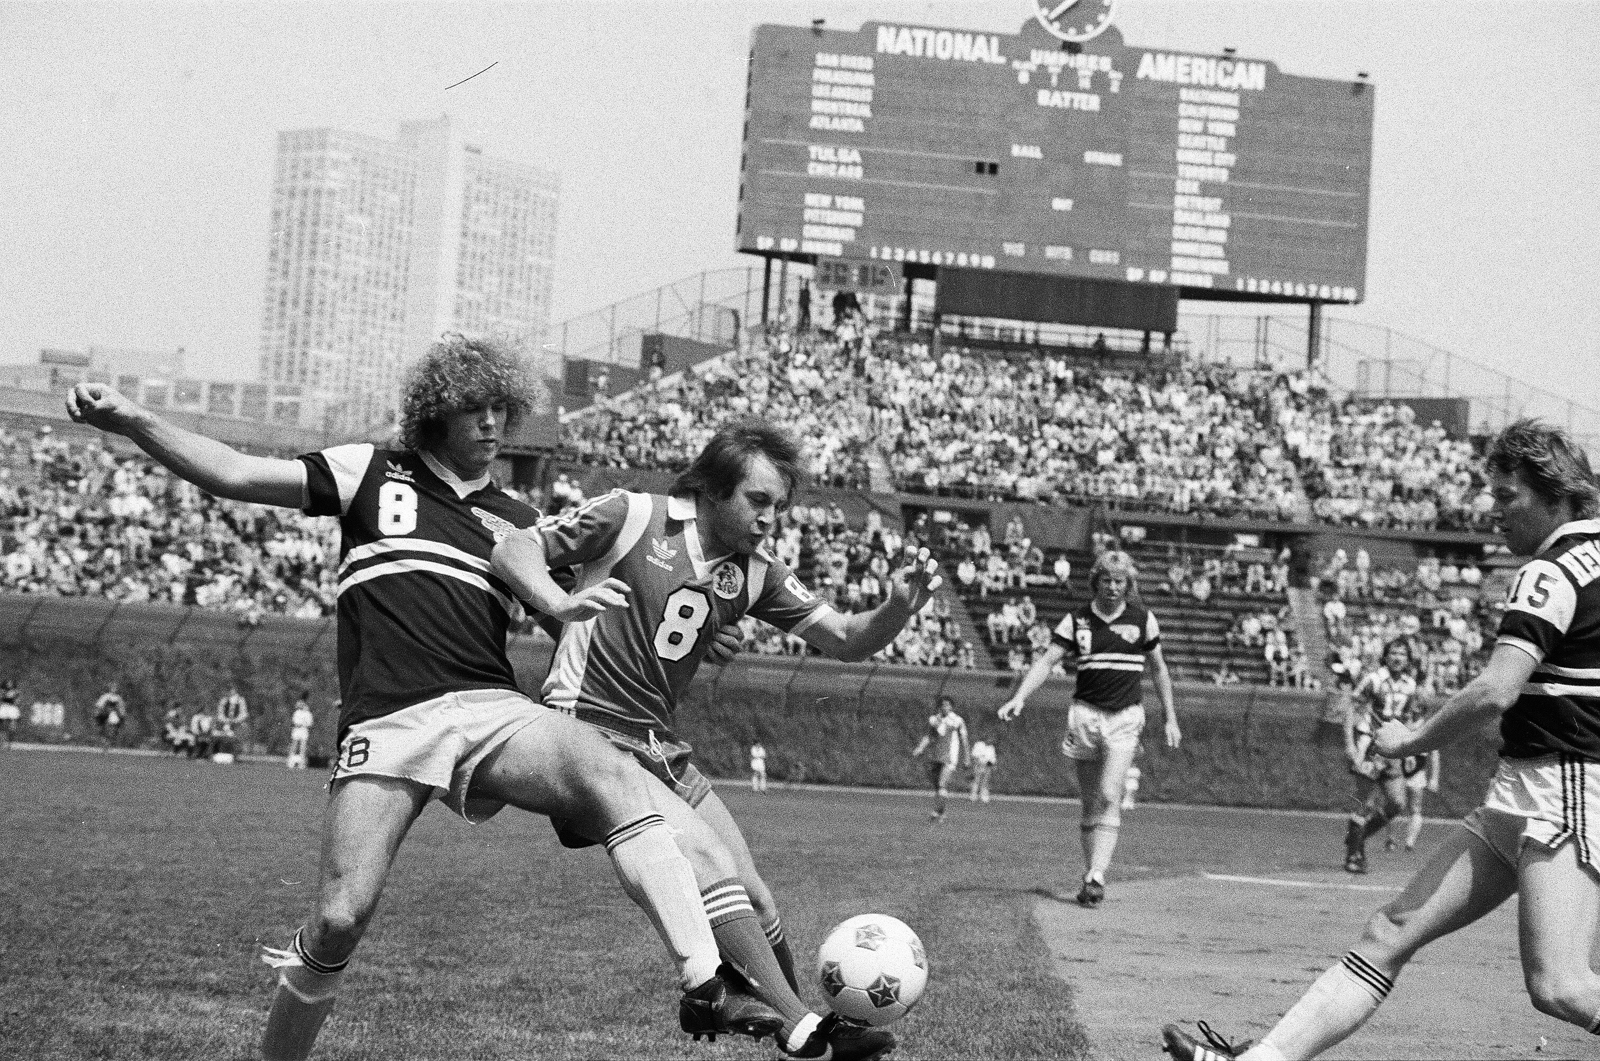 Sting 82 Road Rudy Glenn, Roughnecks.jpg